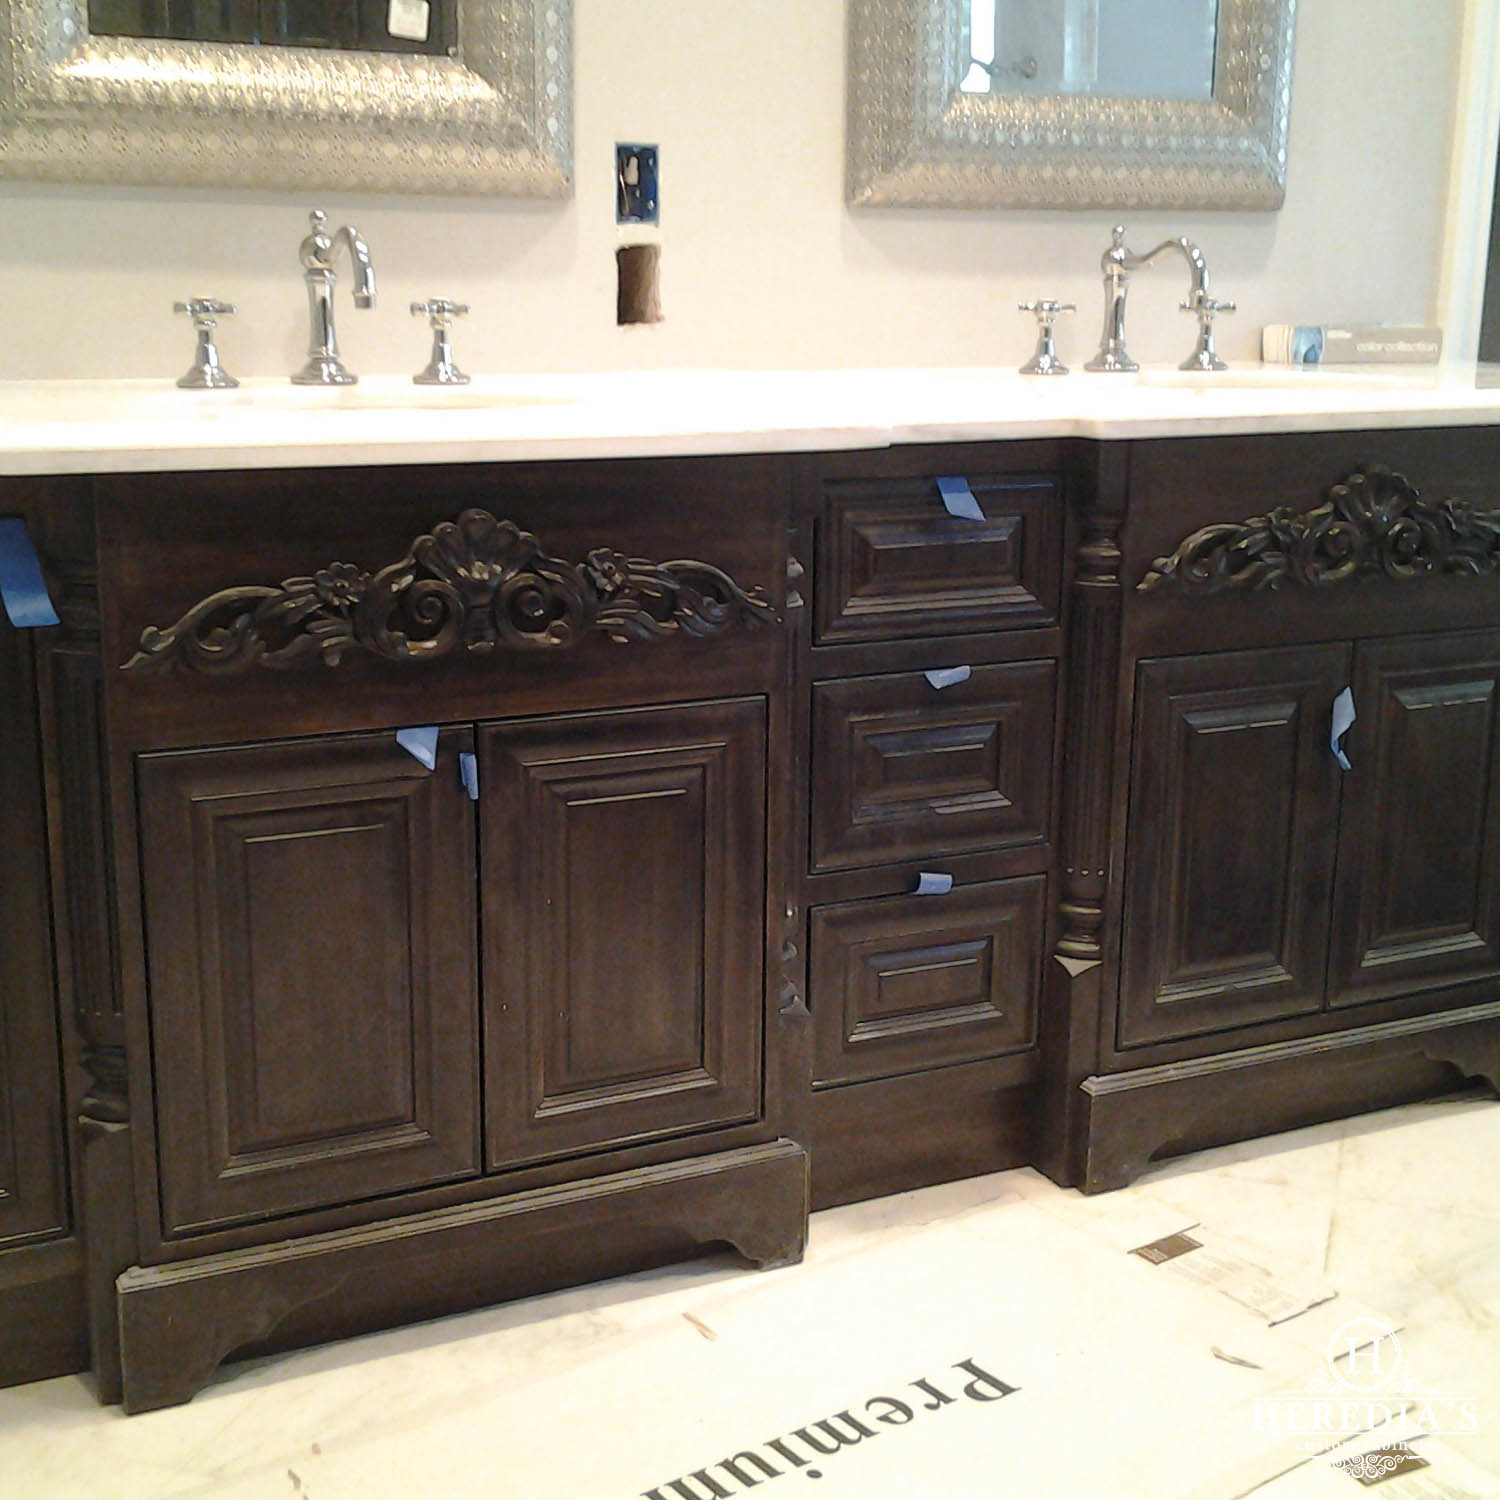 Bathroom Cabinets Ventura County bathroom cabinets projects| custom bathroom cabinet ideas